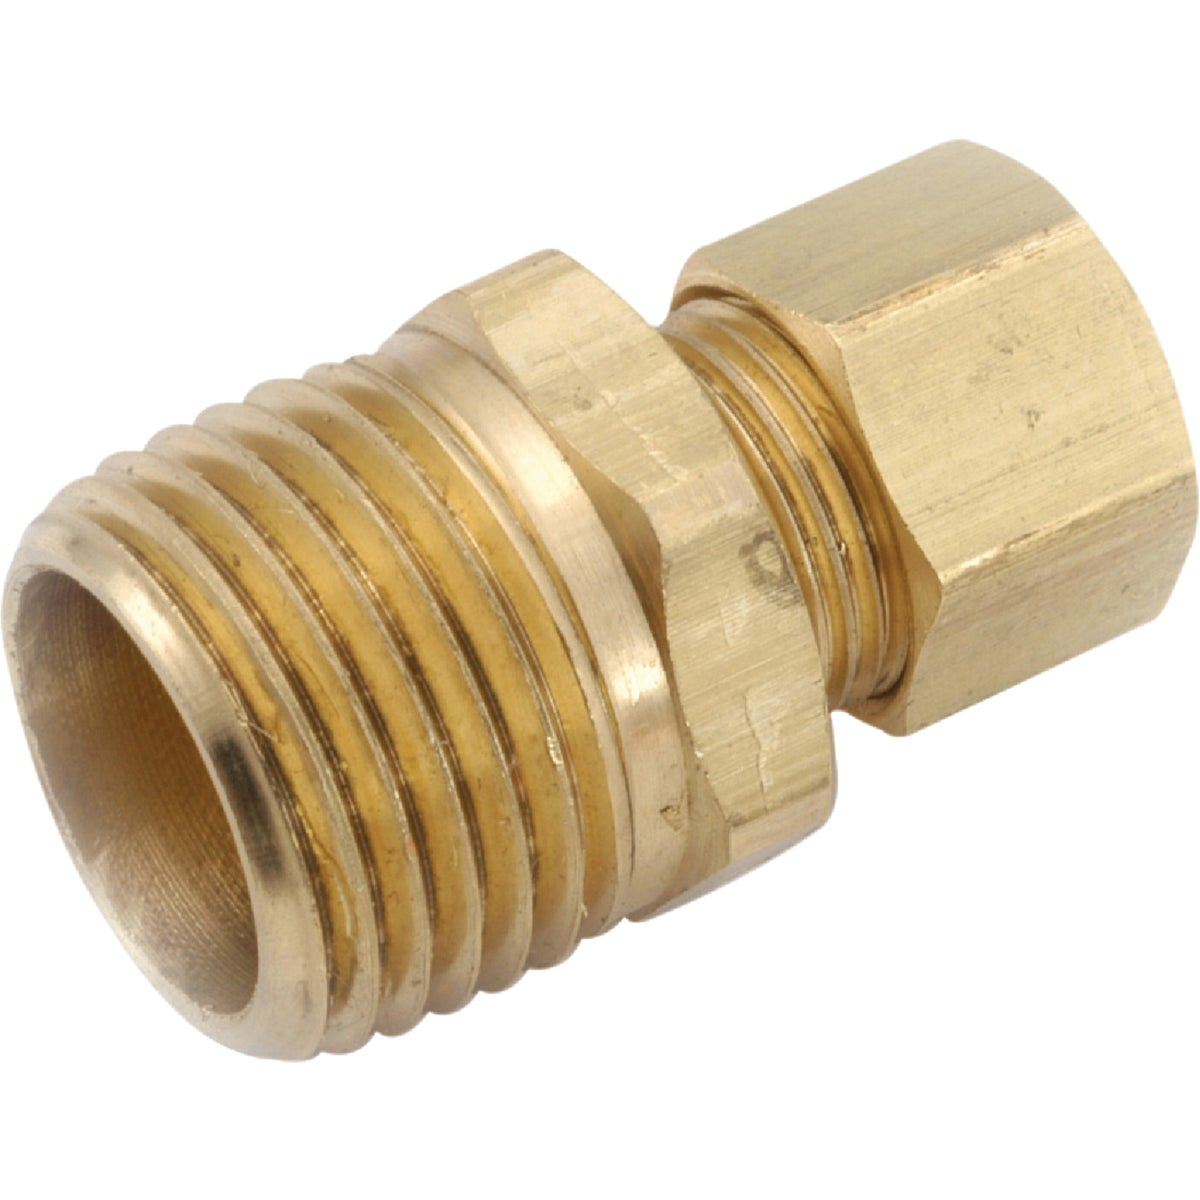 1/4X3/8 MALE CONNECTOR - 750068-0406 by Anderson Metals Corp